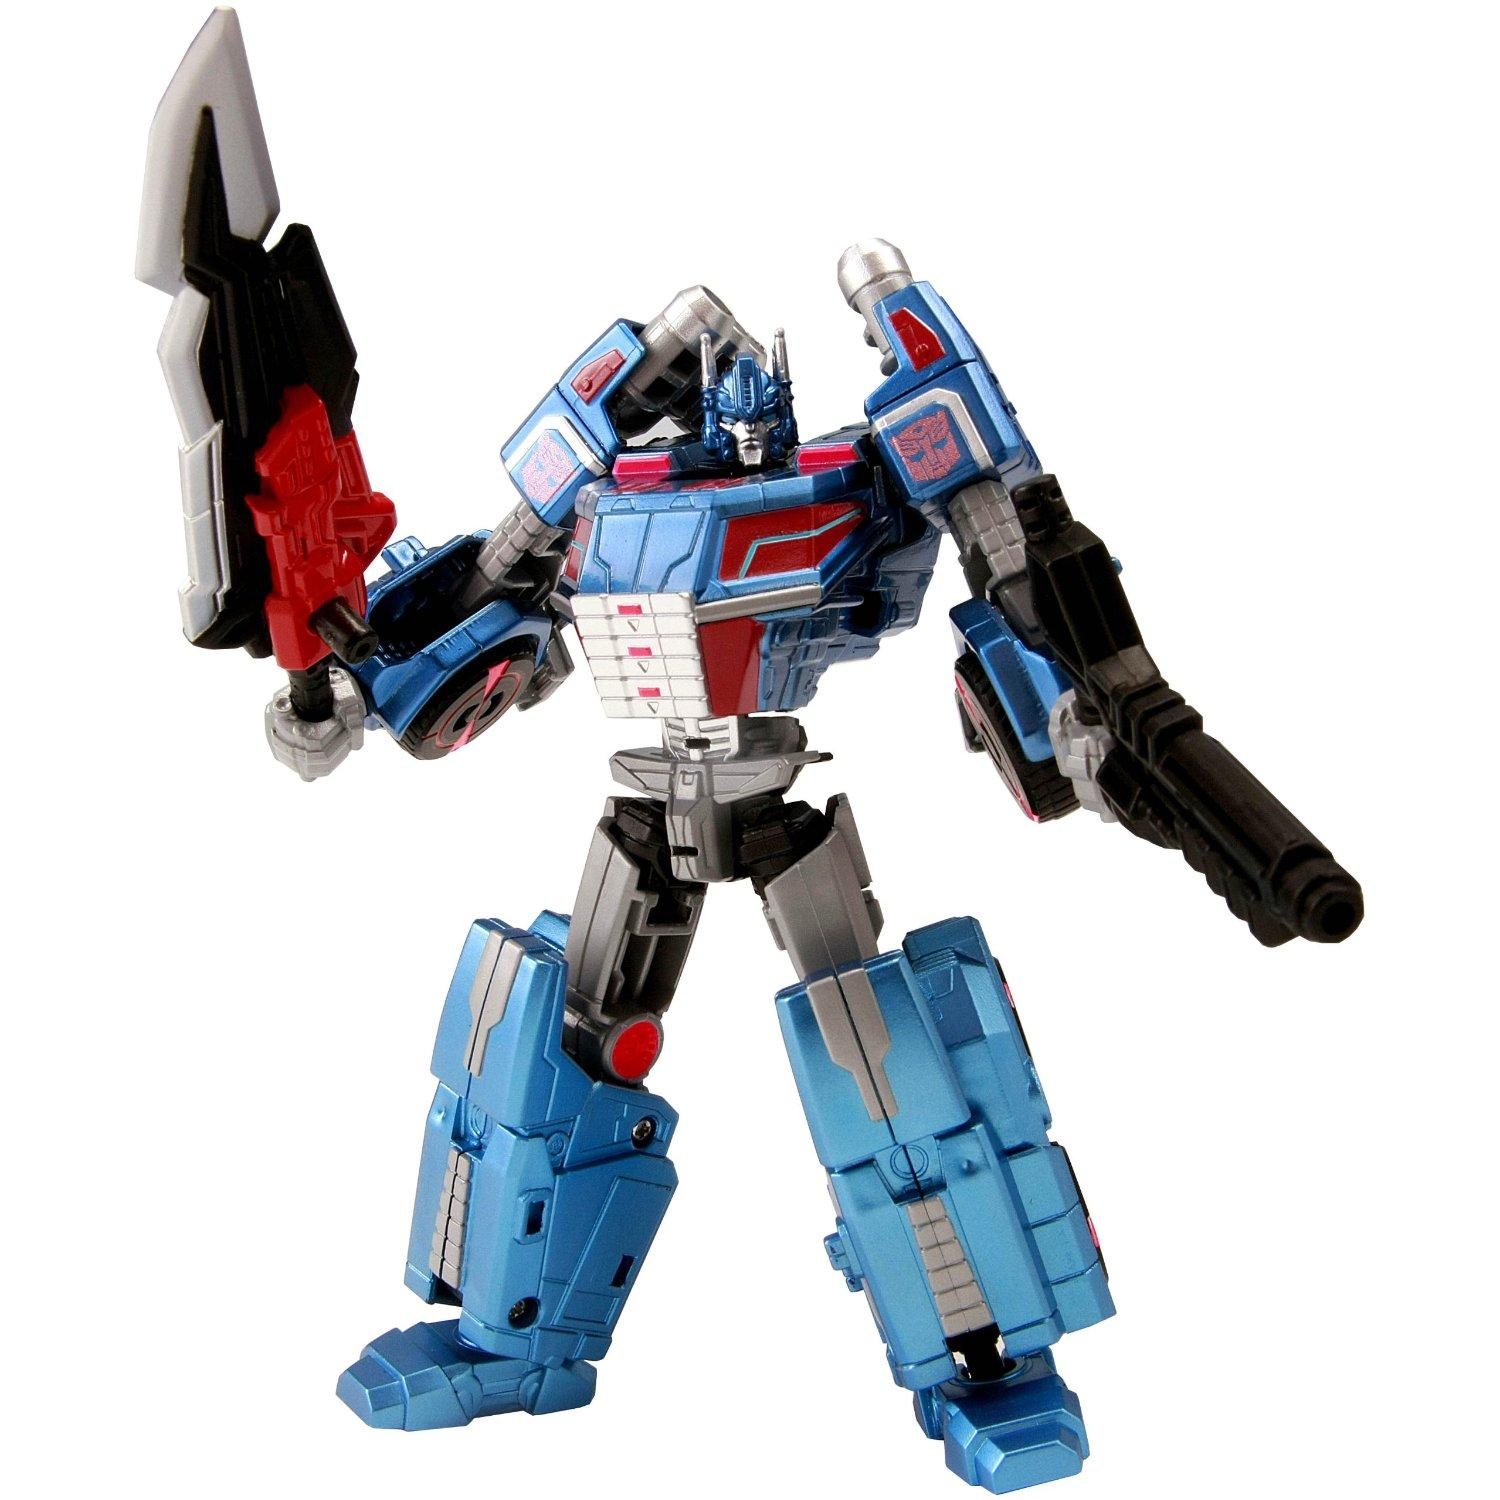 Preorder for Takara TG-11 FOC Ultra Magnus, Price=SGD$44, ETA=Feb 13  Email: hobbyarktoy@gmail.com for order http://t.co/NBcusBye